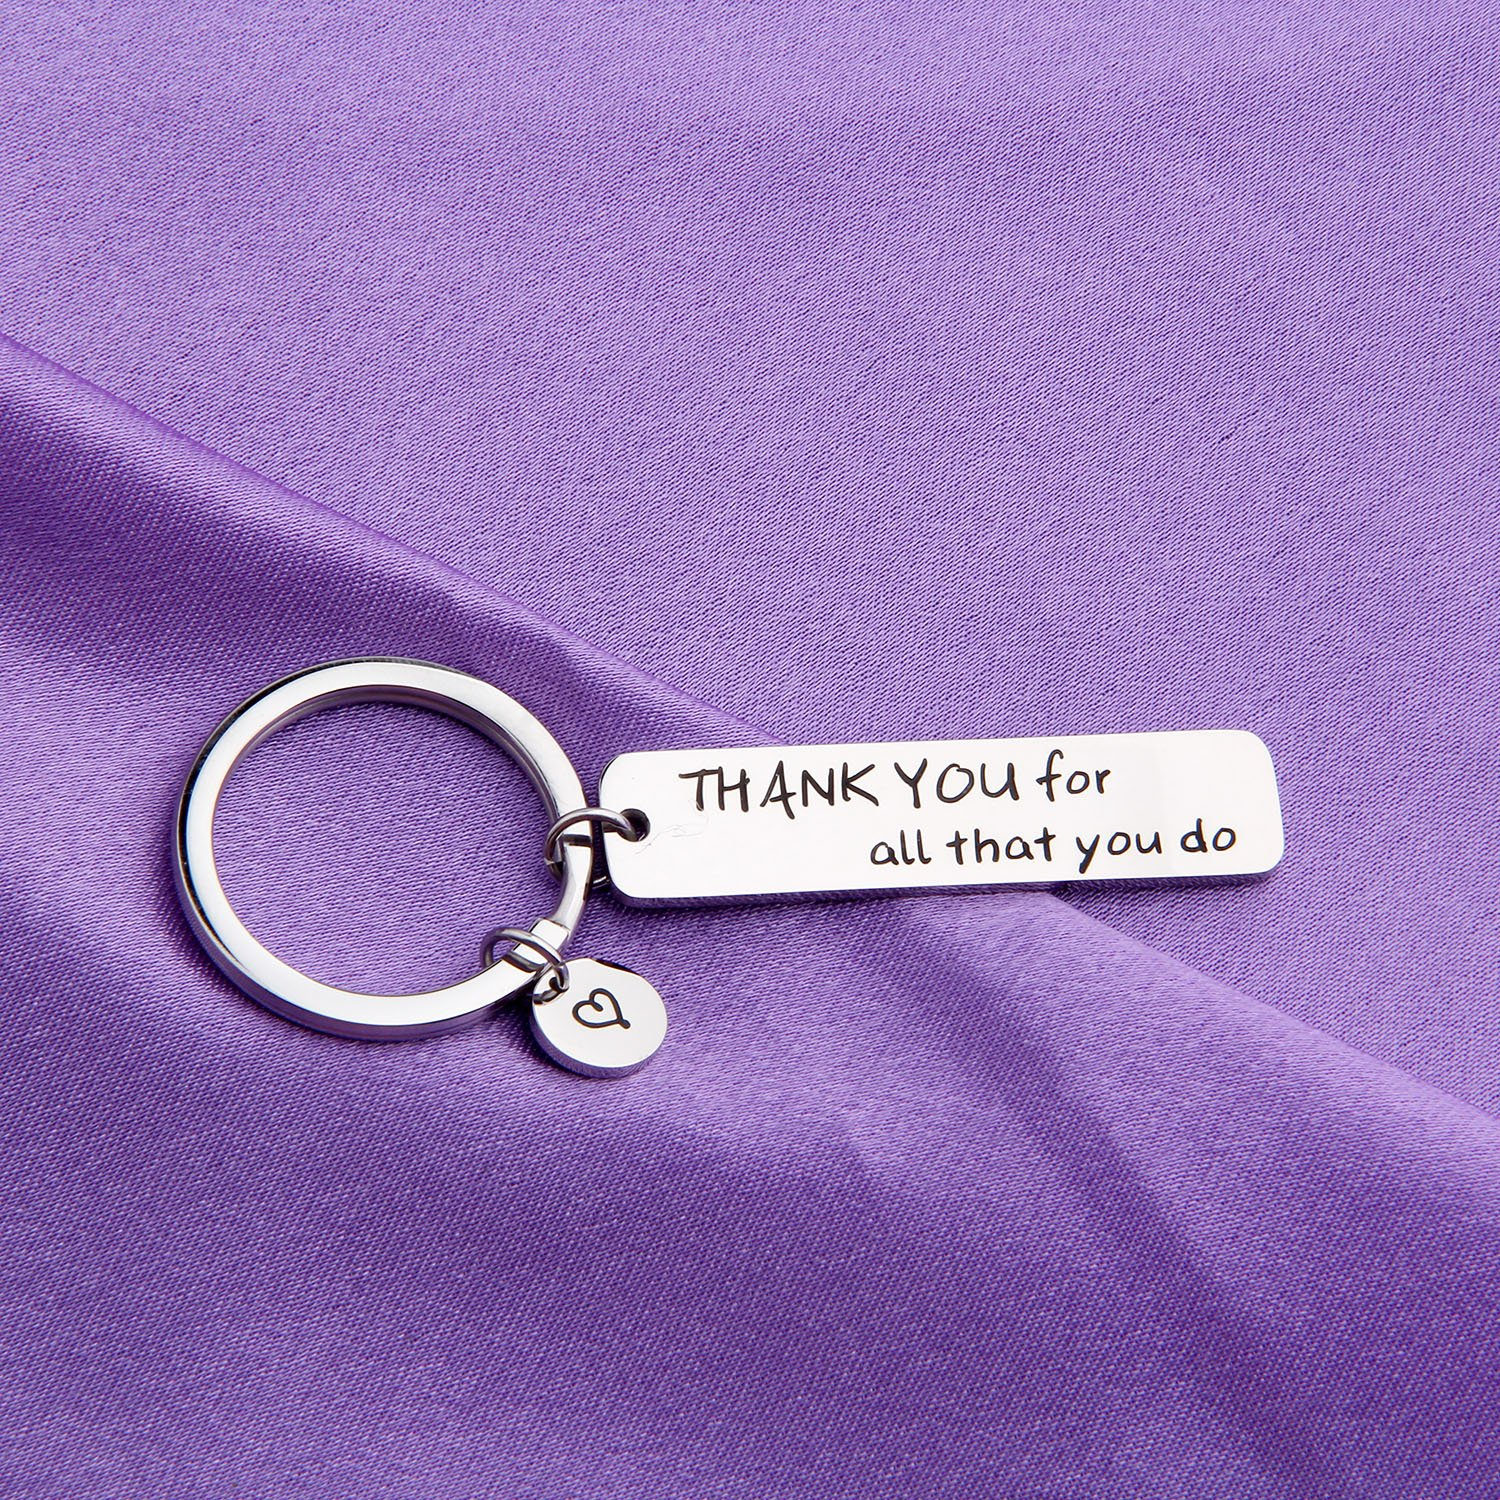 MAOFAED Appreciation Gift Thank You For All That You Do Cuff Bracelet Thank You Gift for Nurse Teacher Coach Employee (Thank you Keychain) by MAOFAED (Image #5)